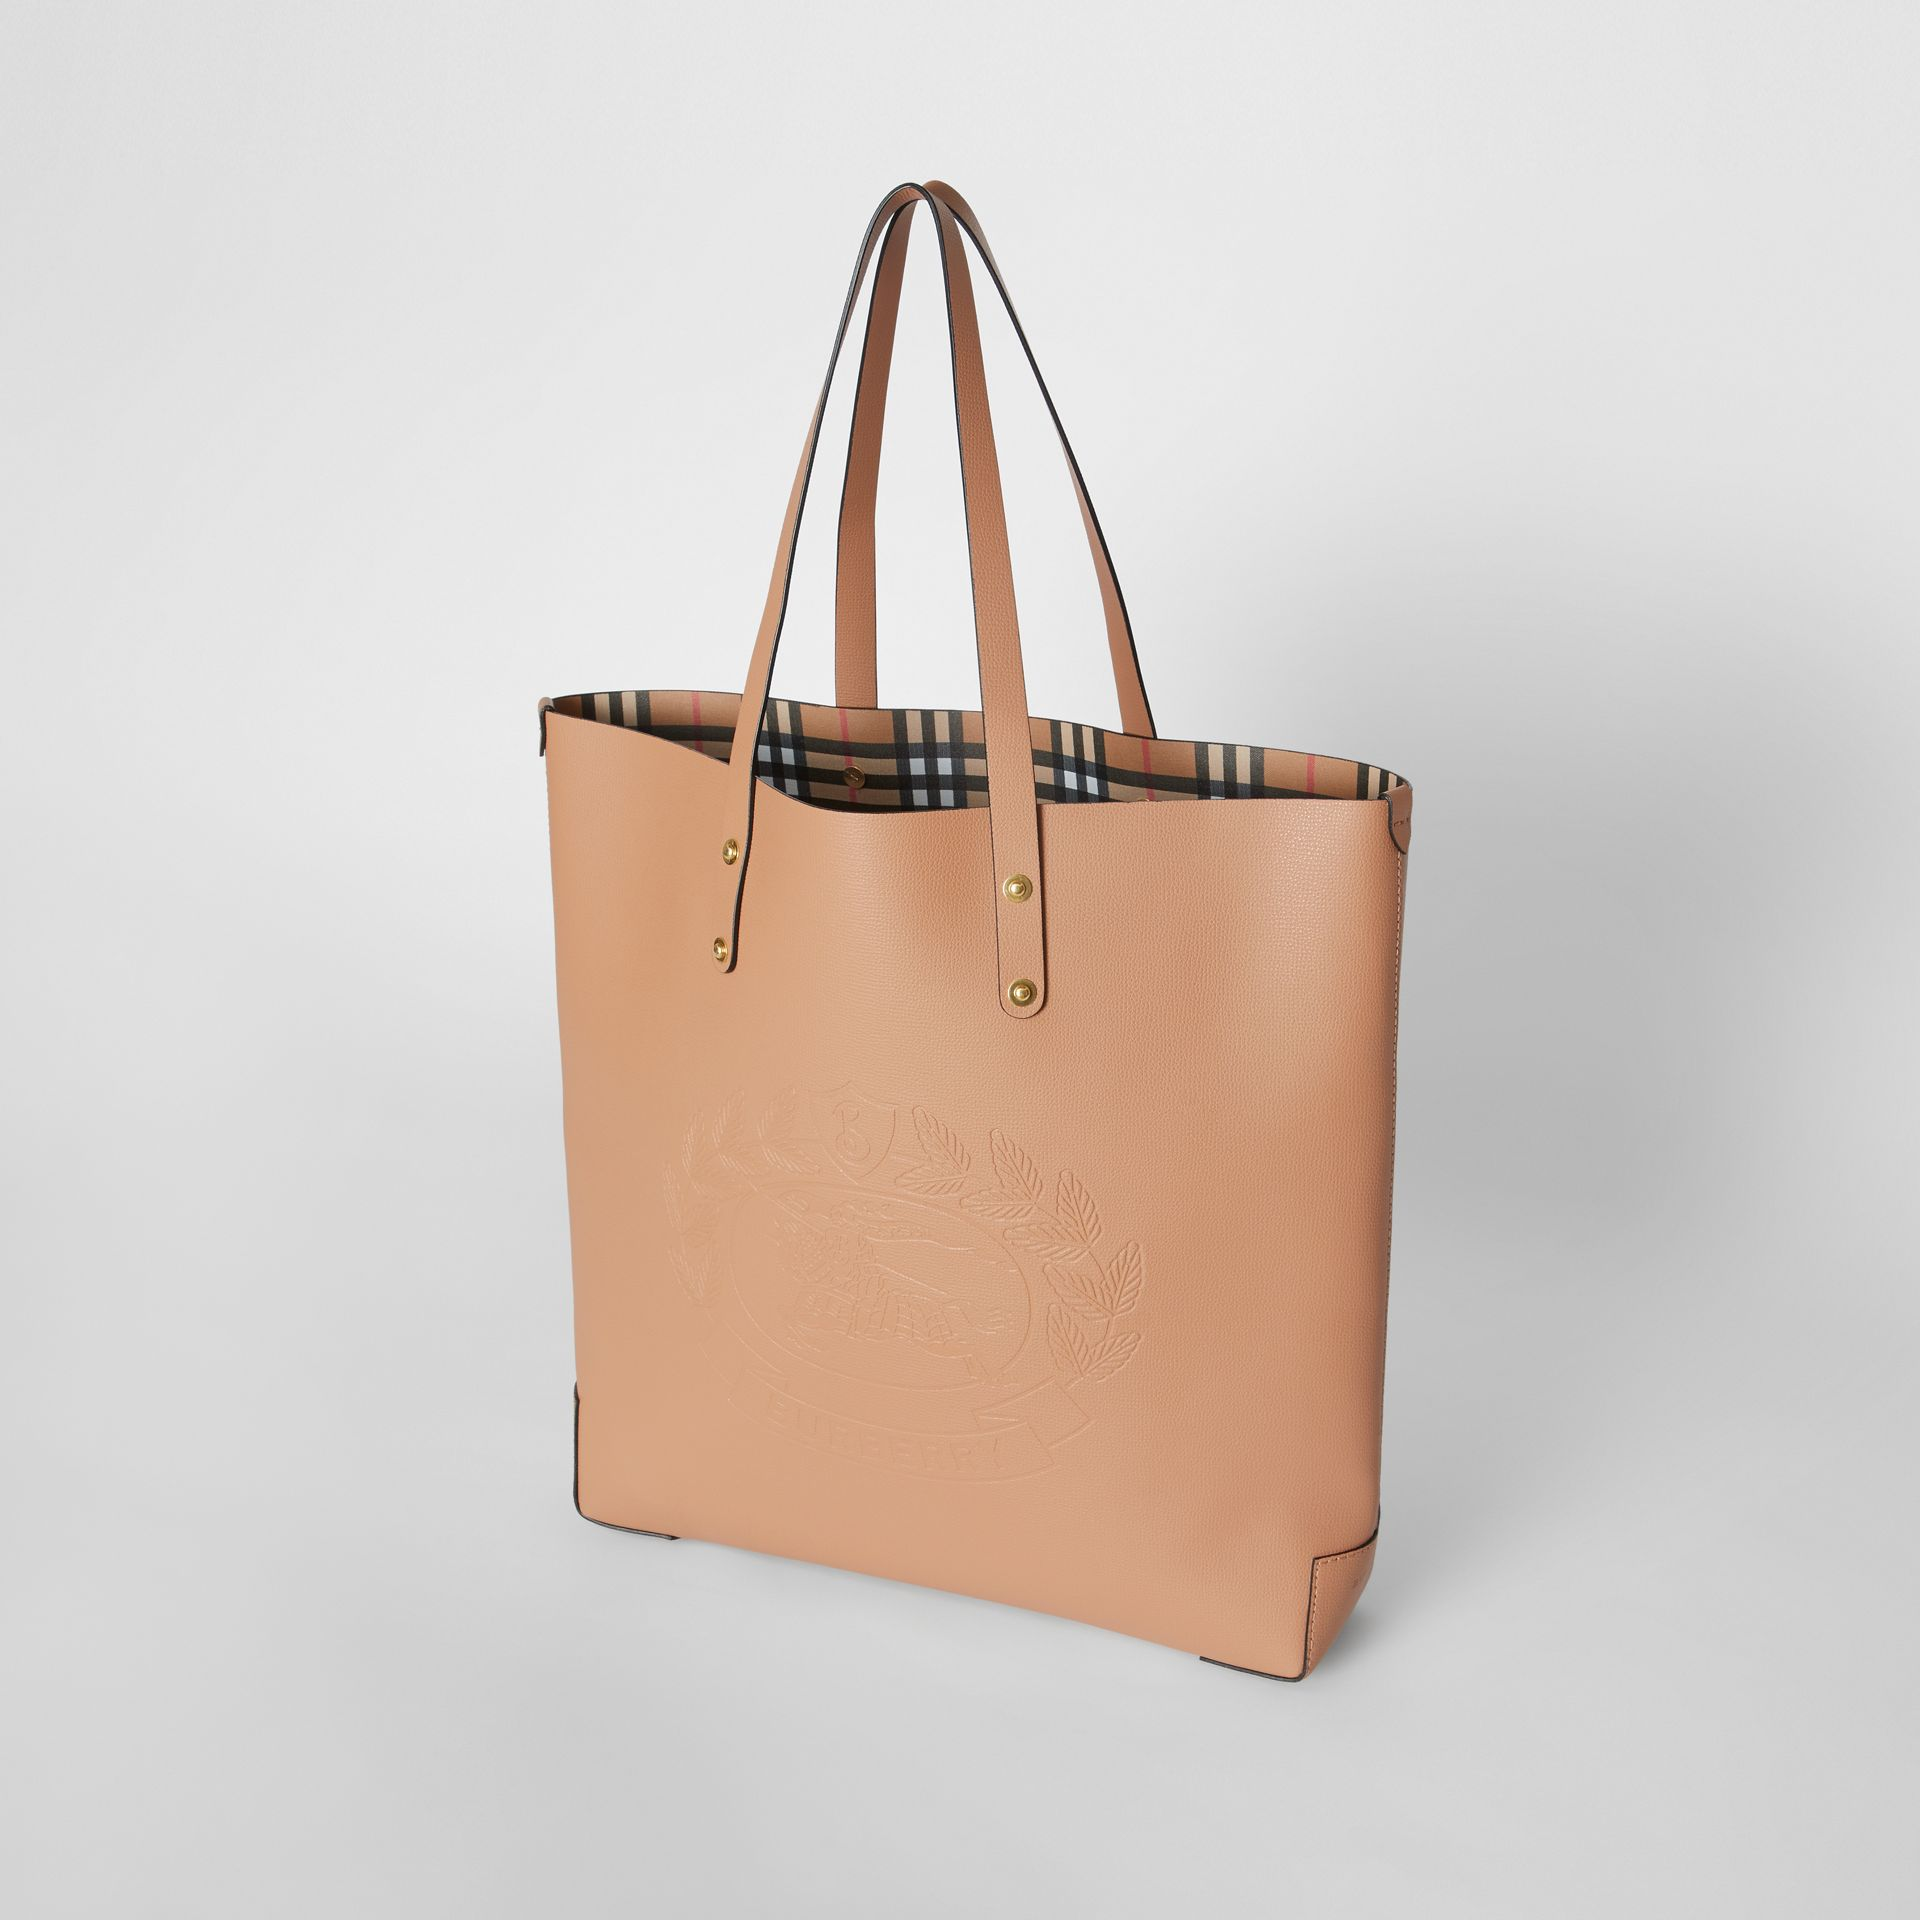 Embossed Crest Leather Tote in Light Camel - Women | Burberry - gallery image 3